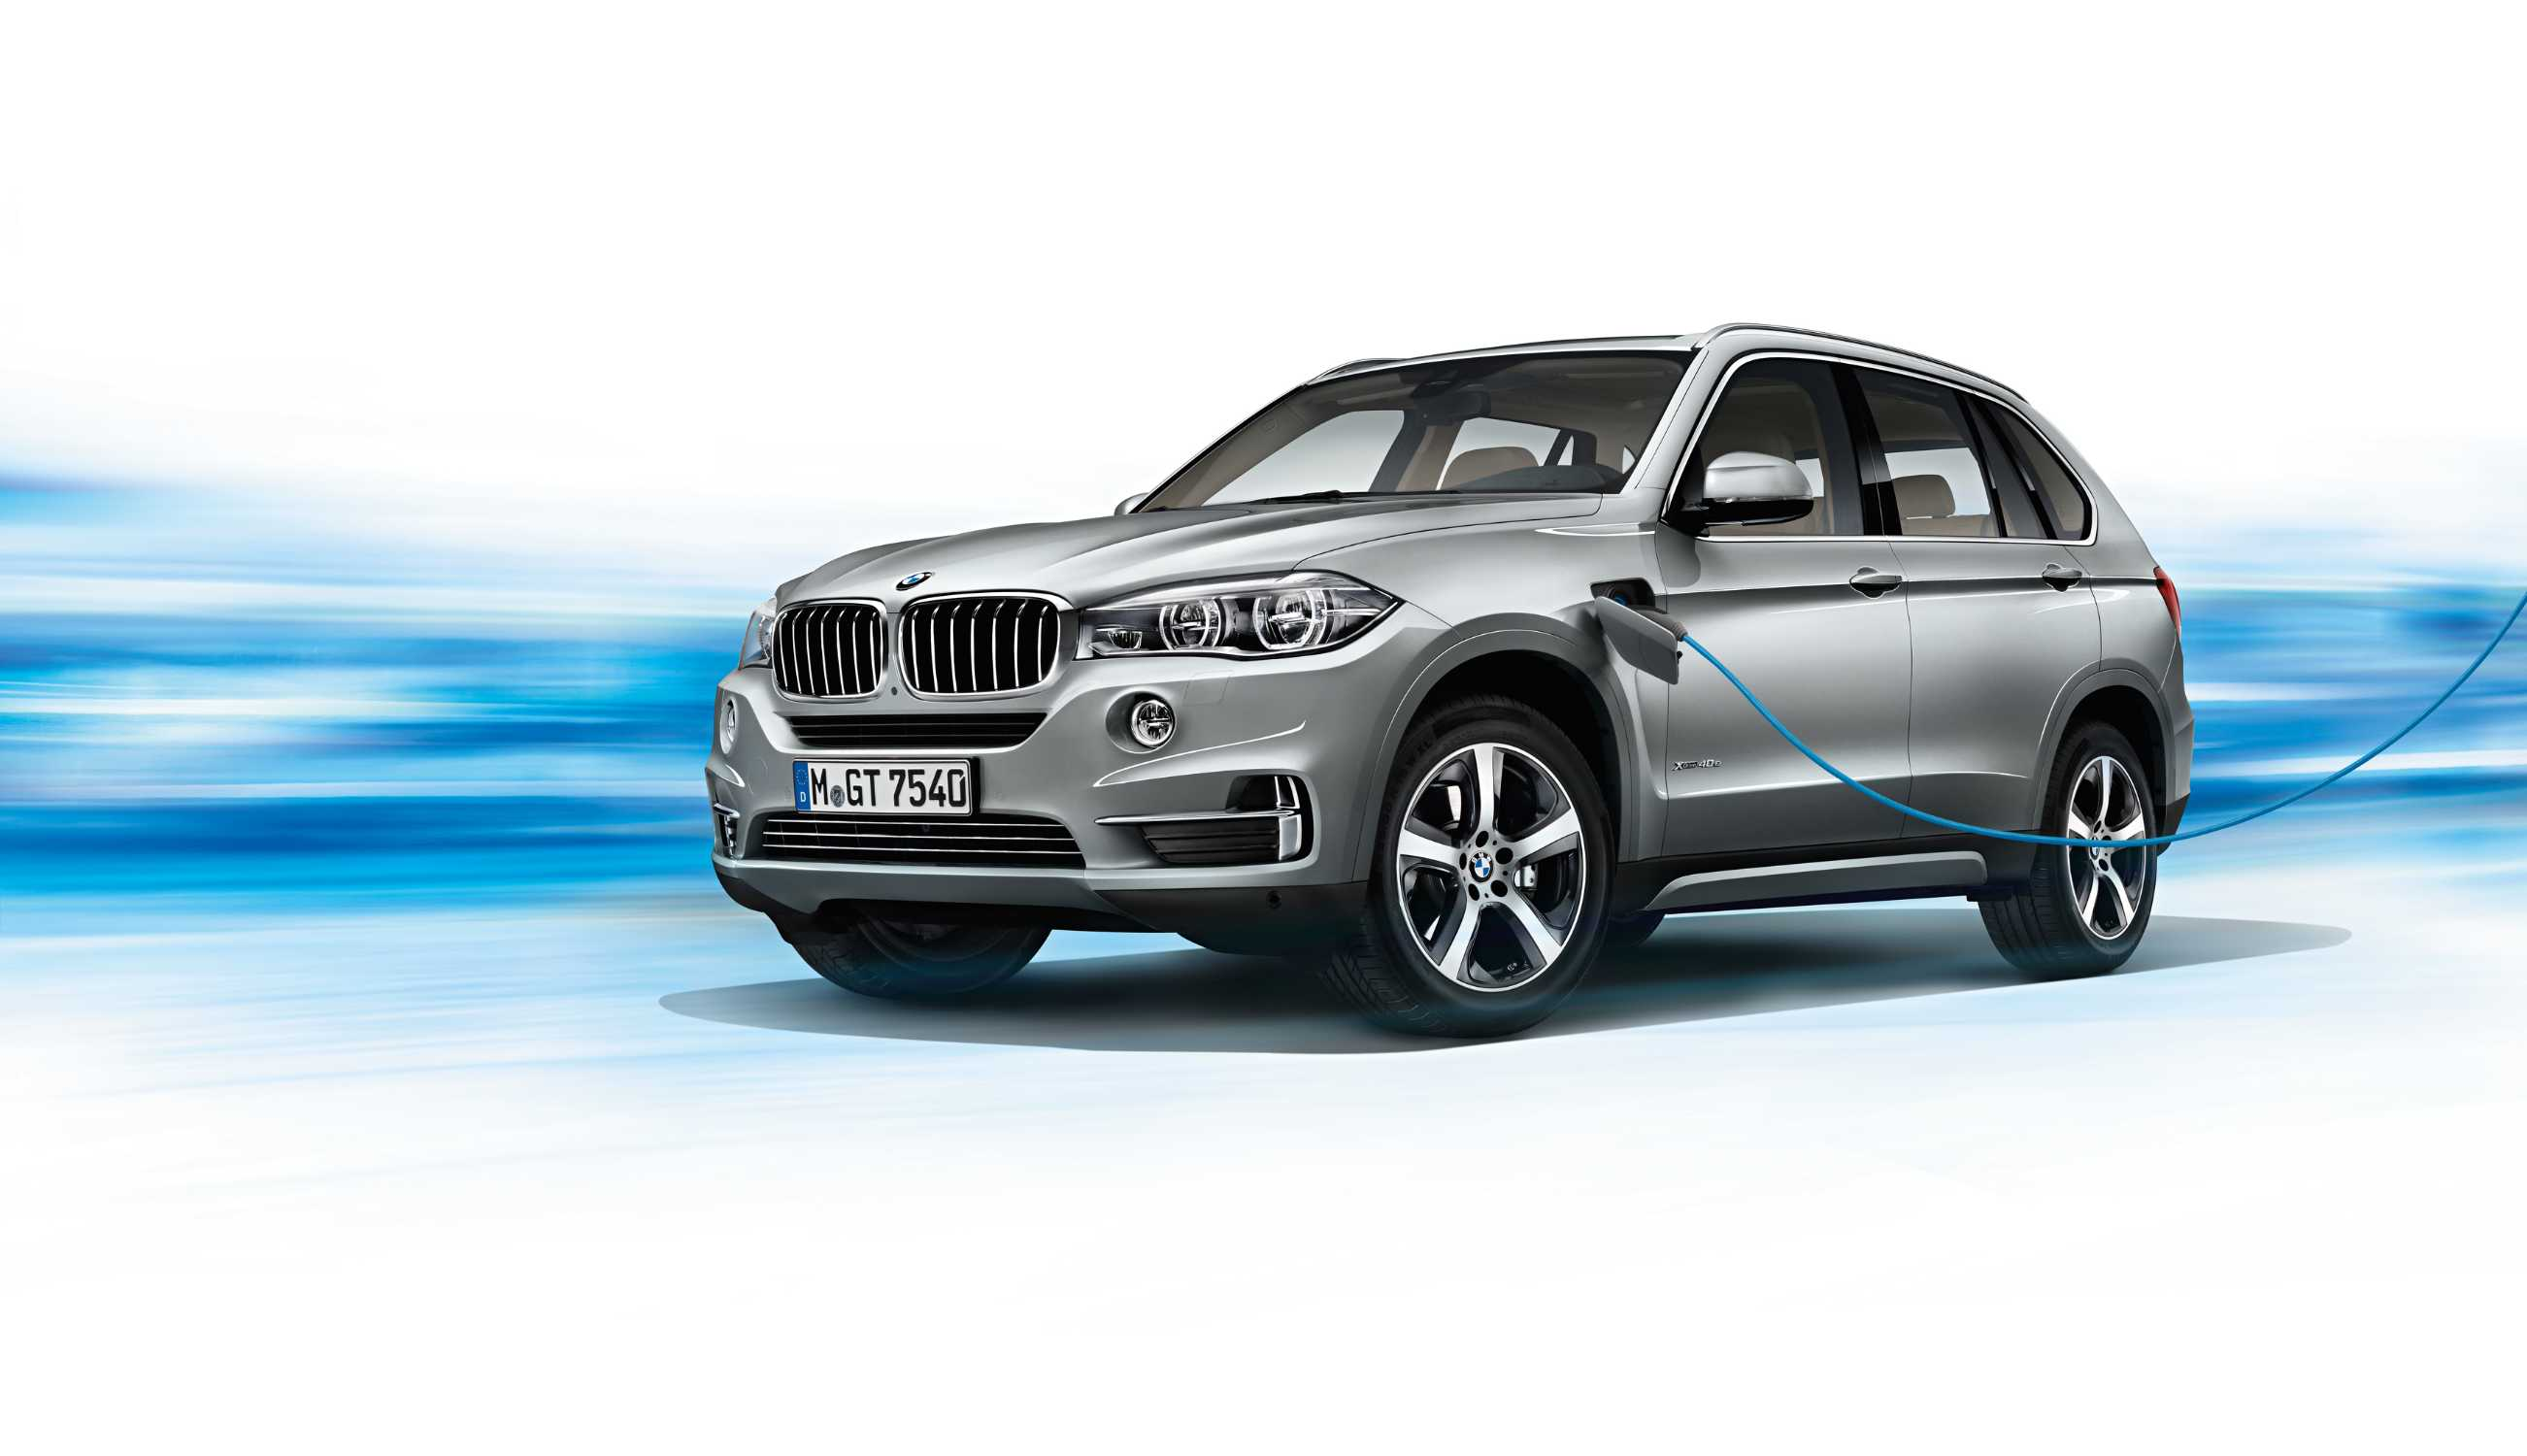 The Bmw X5 Xdrive40e